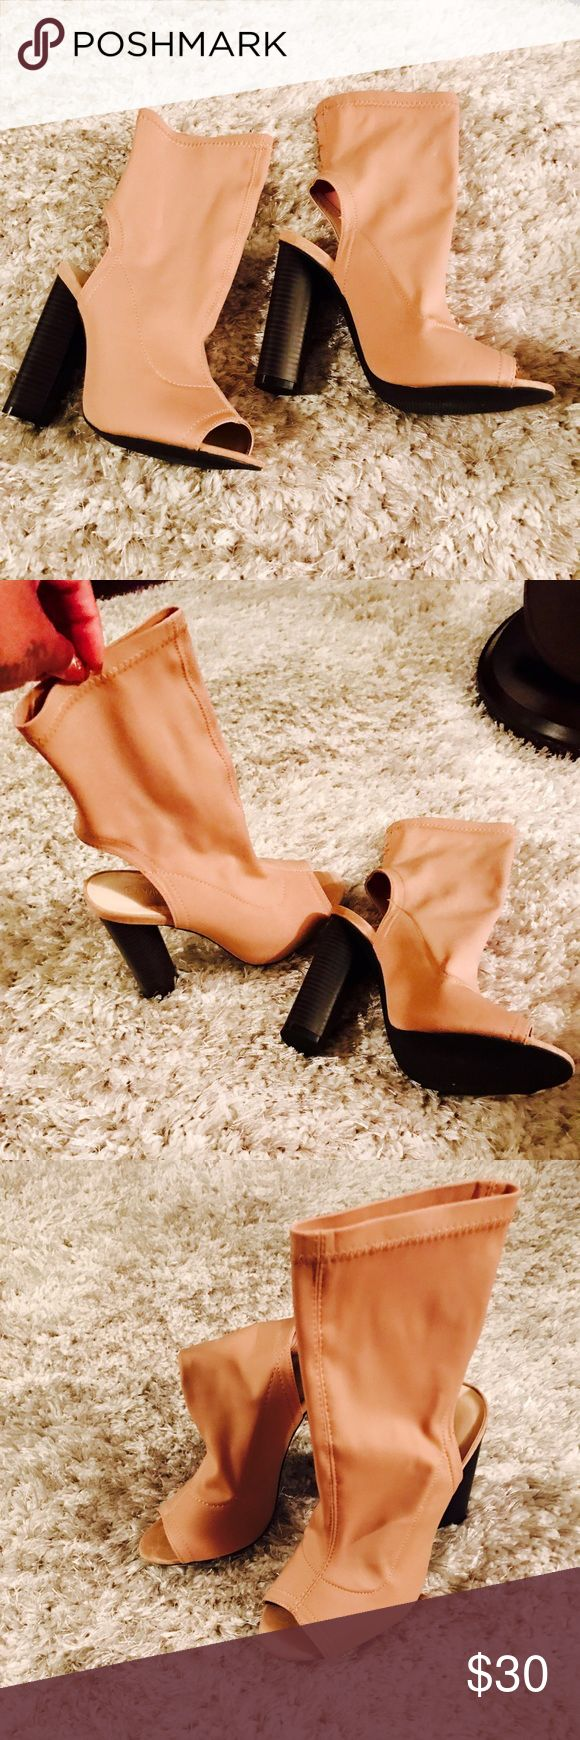 Nude sock bootie Nude sock bootie with peep toe extra comfy and great fashion item come in a size 7.5 Shoes Ankle Boots & Booties